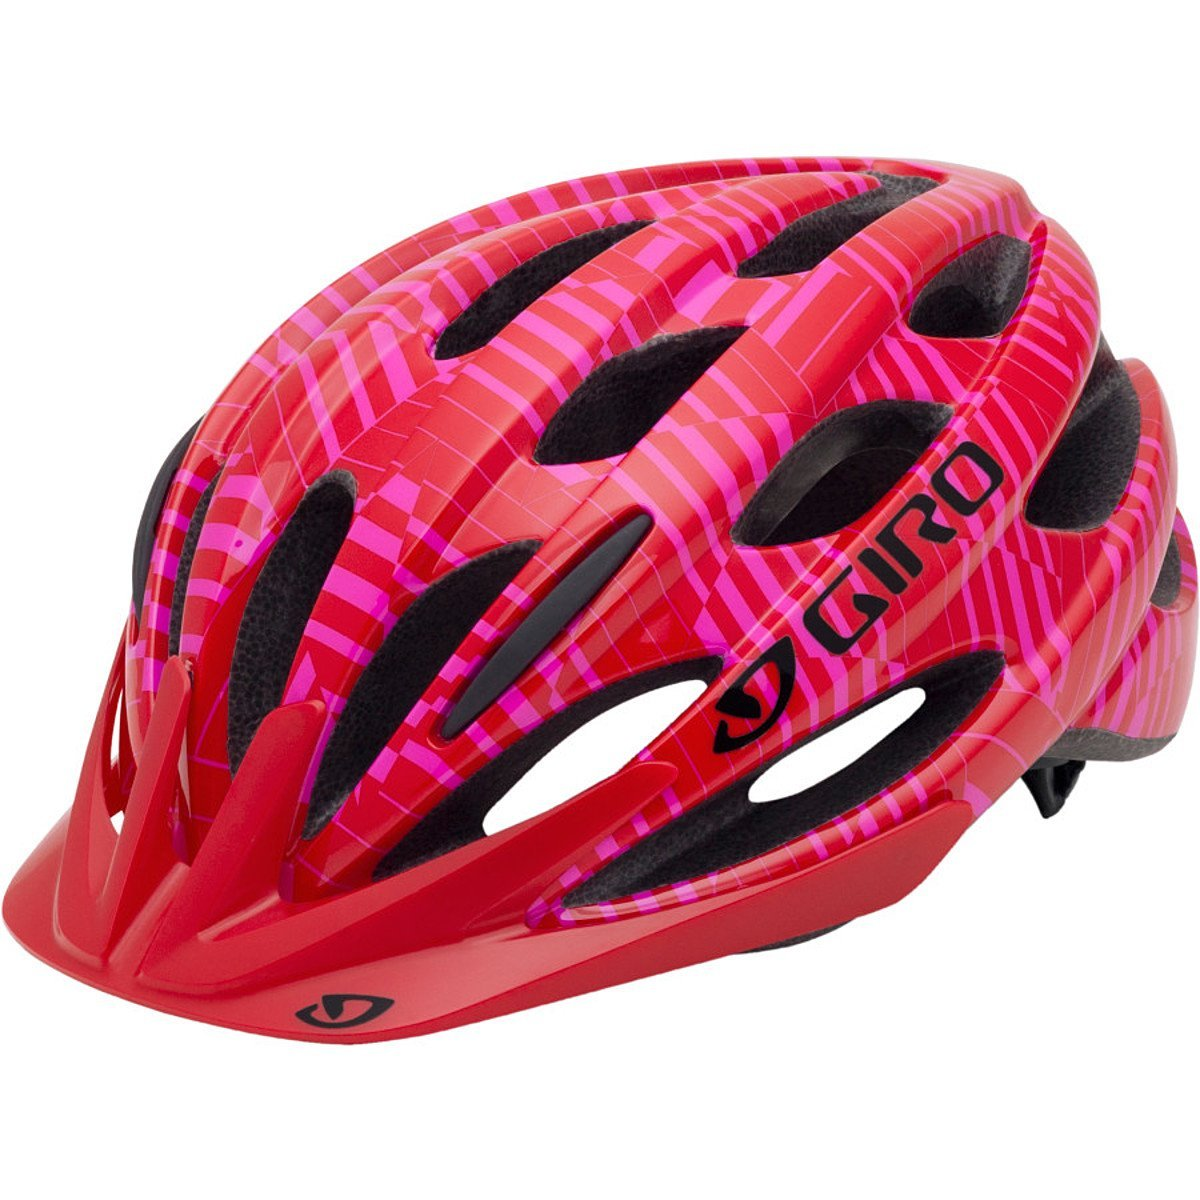 Sizes of Giro Bicycle Helmets